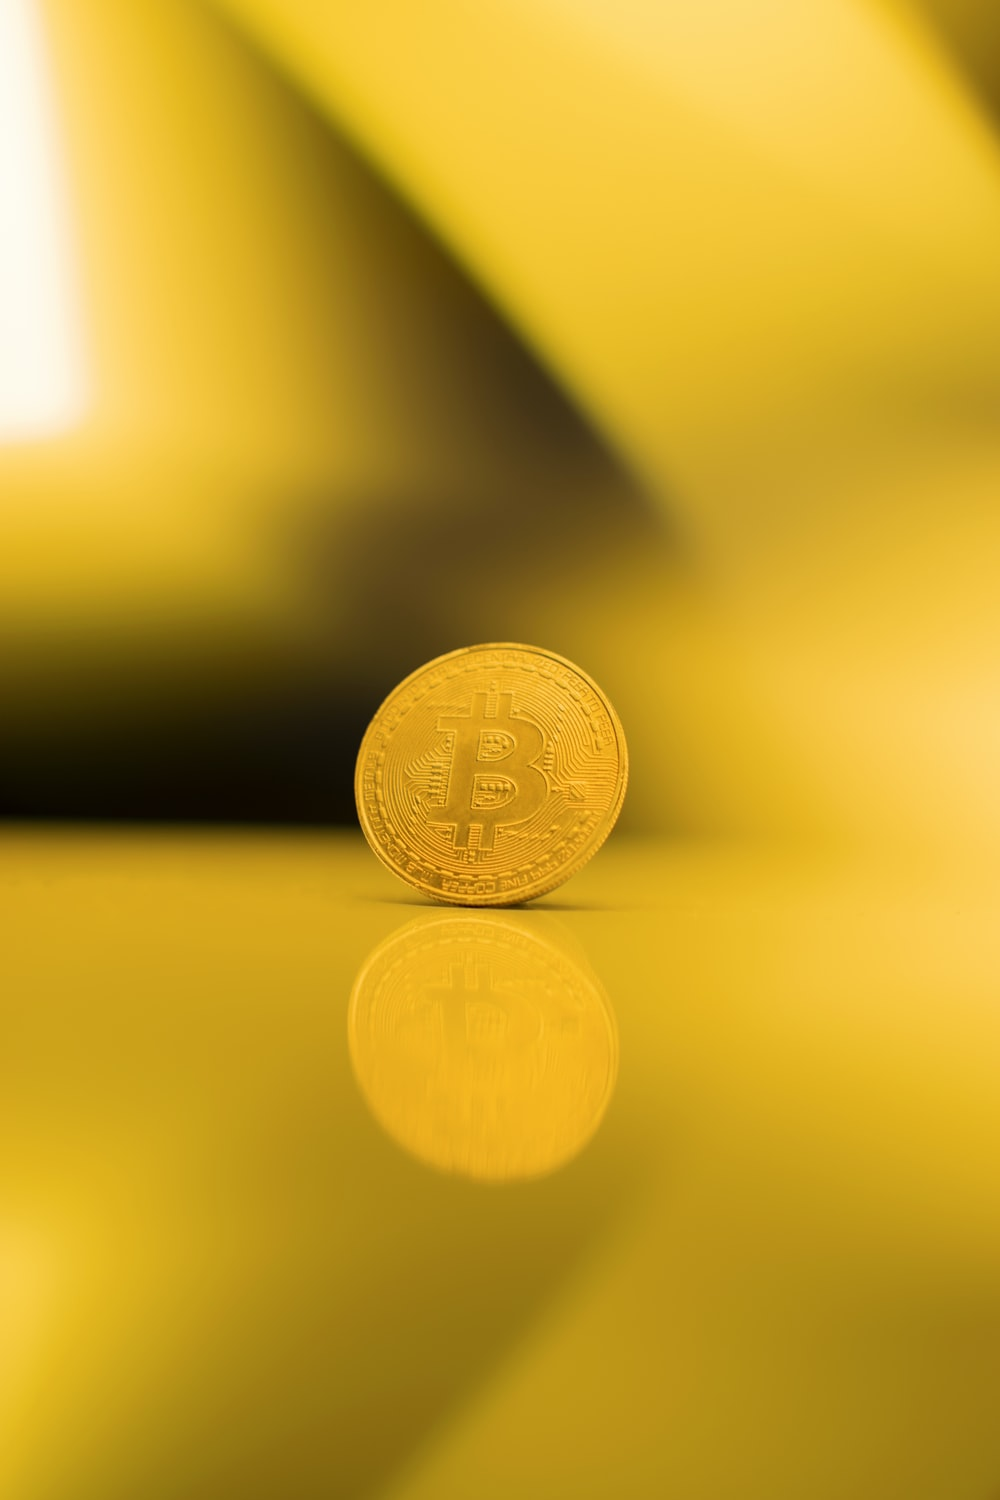 gold round coin on yellow surface